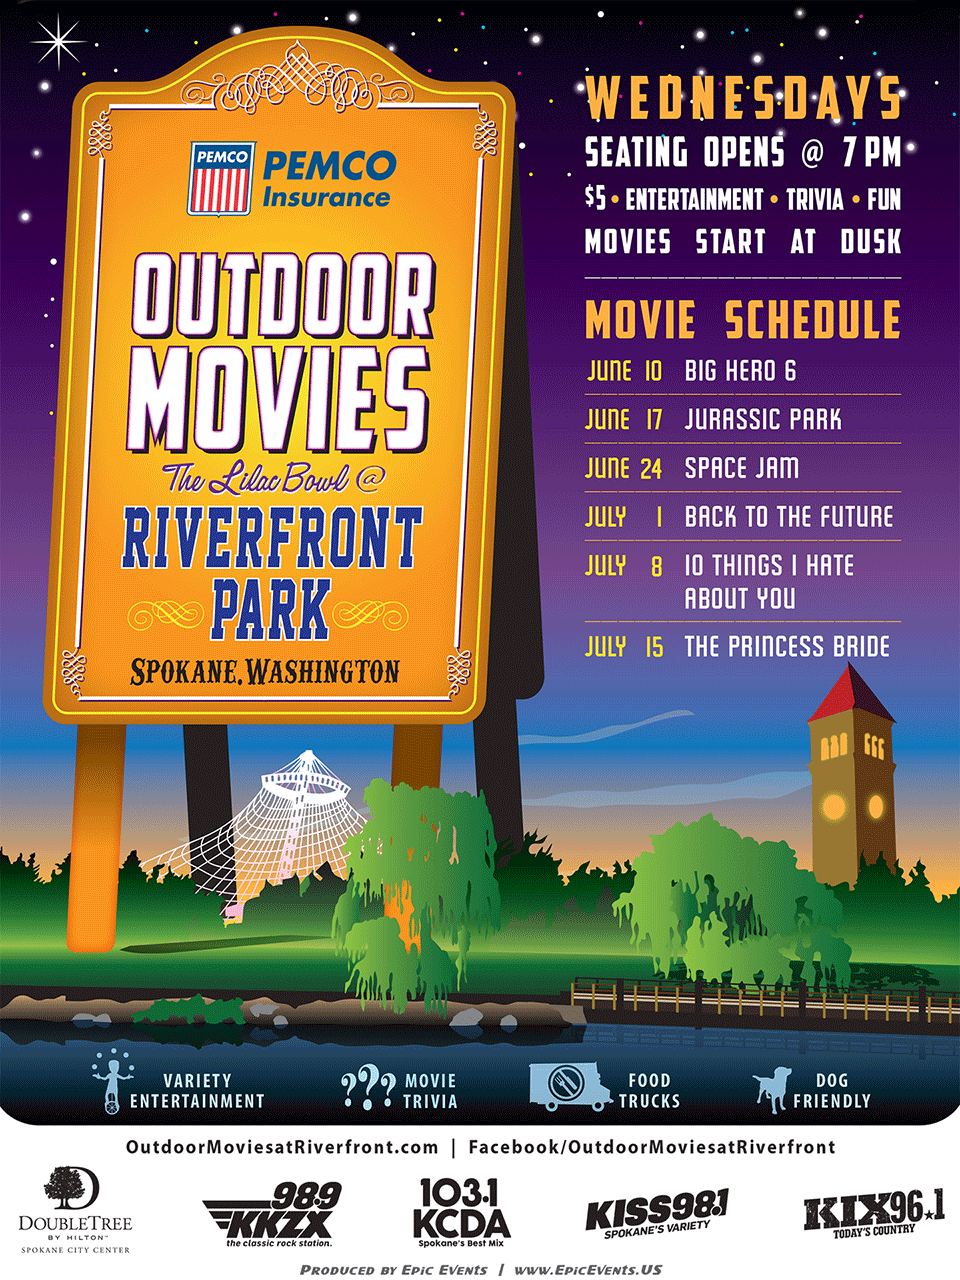 pemco outdoor movies at riverfront park city of spokane washington